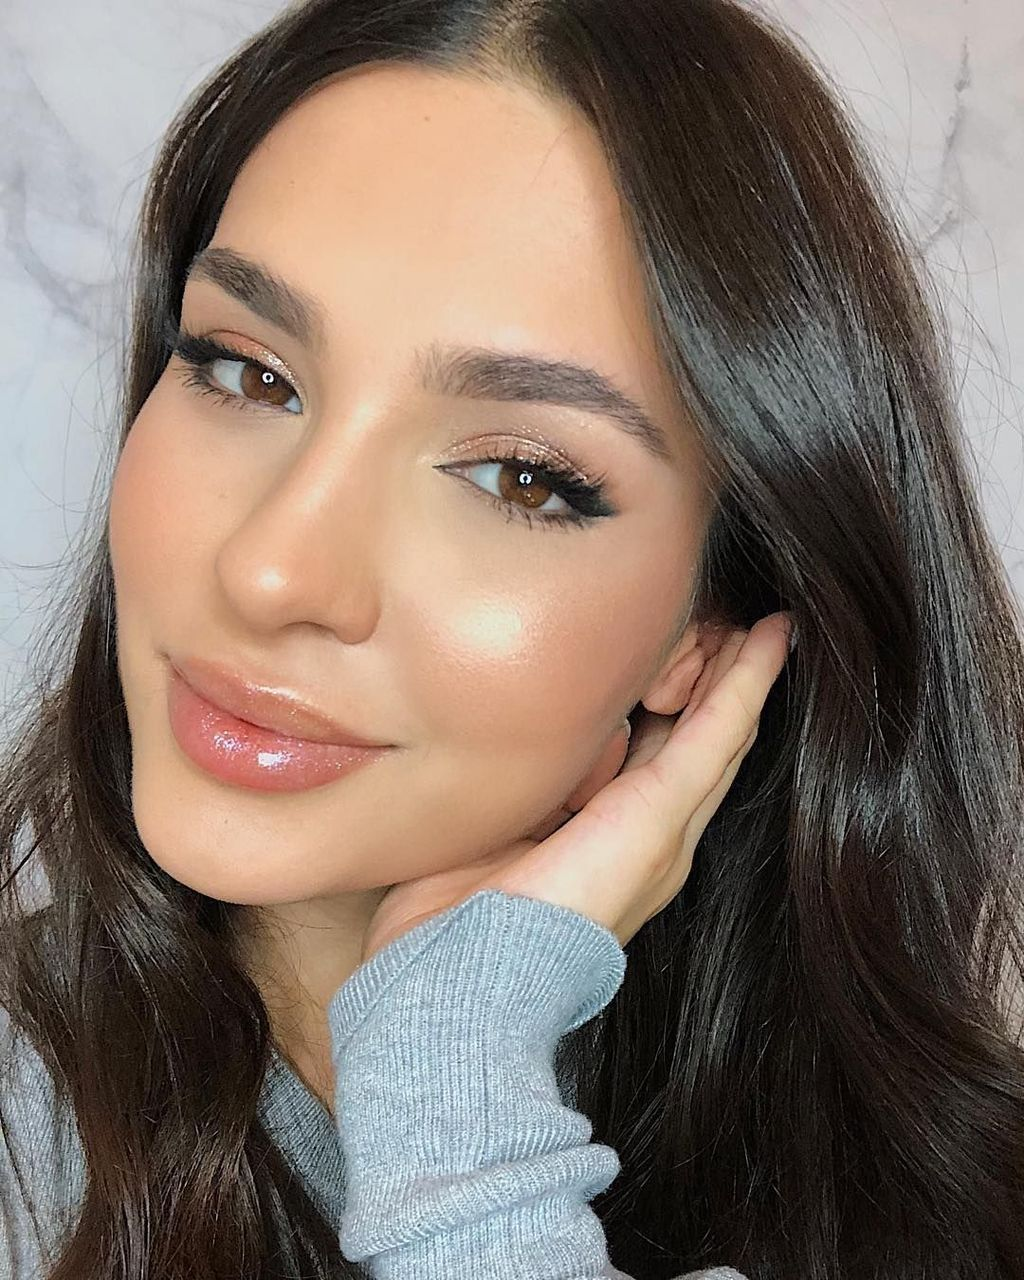 20+ Chic Natural Makeup Ideas For Any Season To Try en